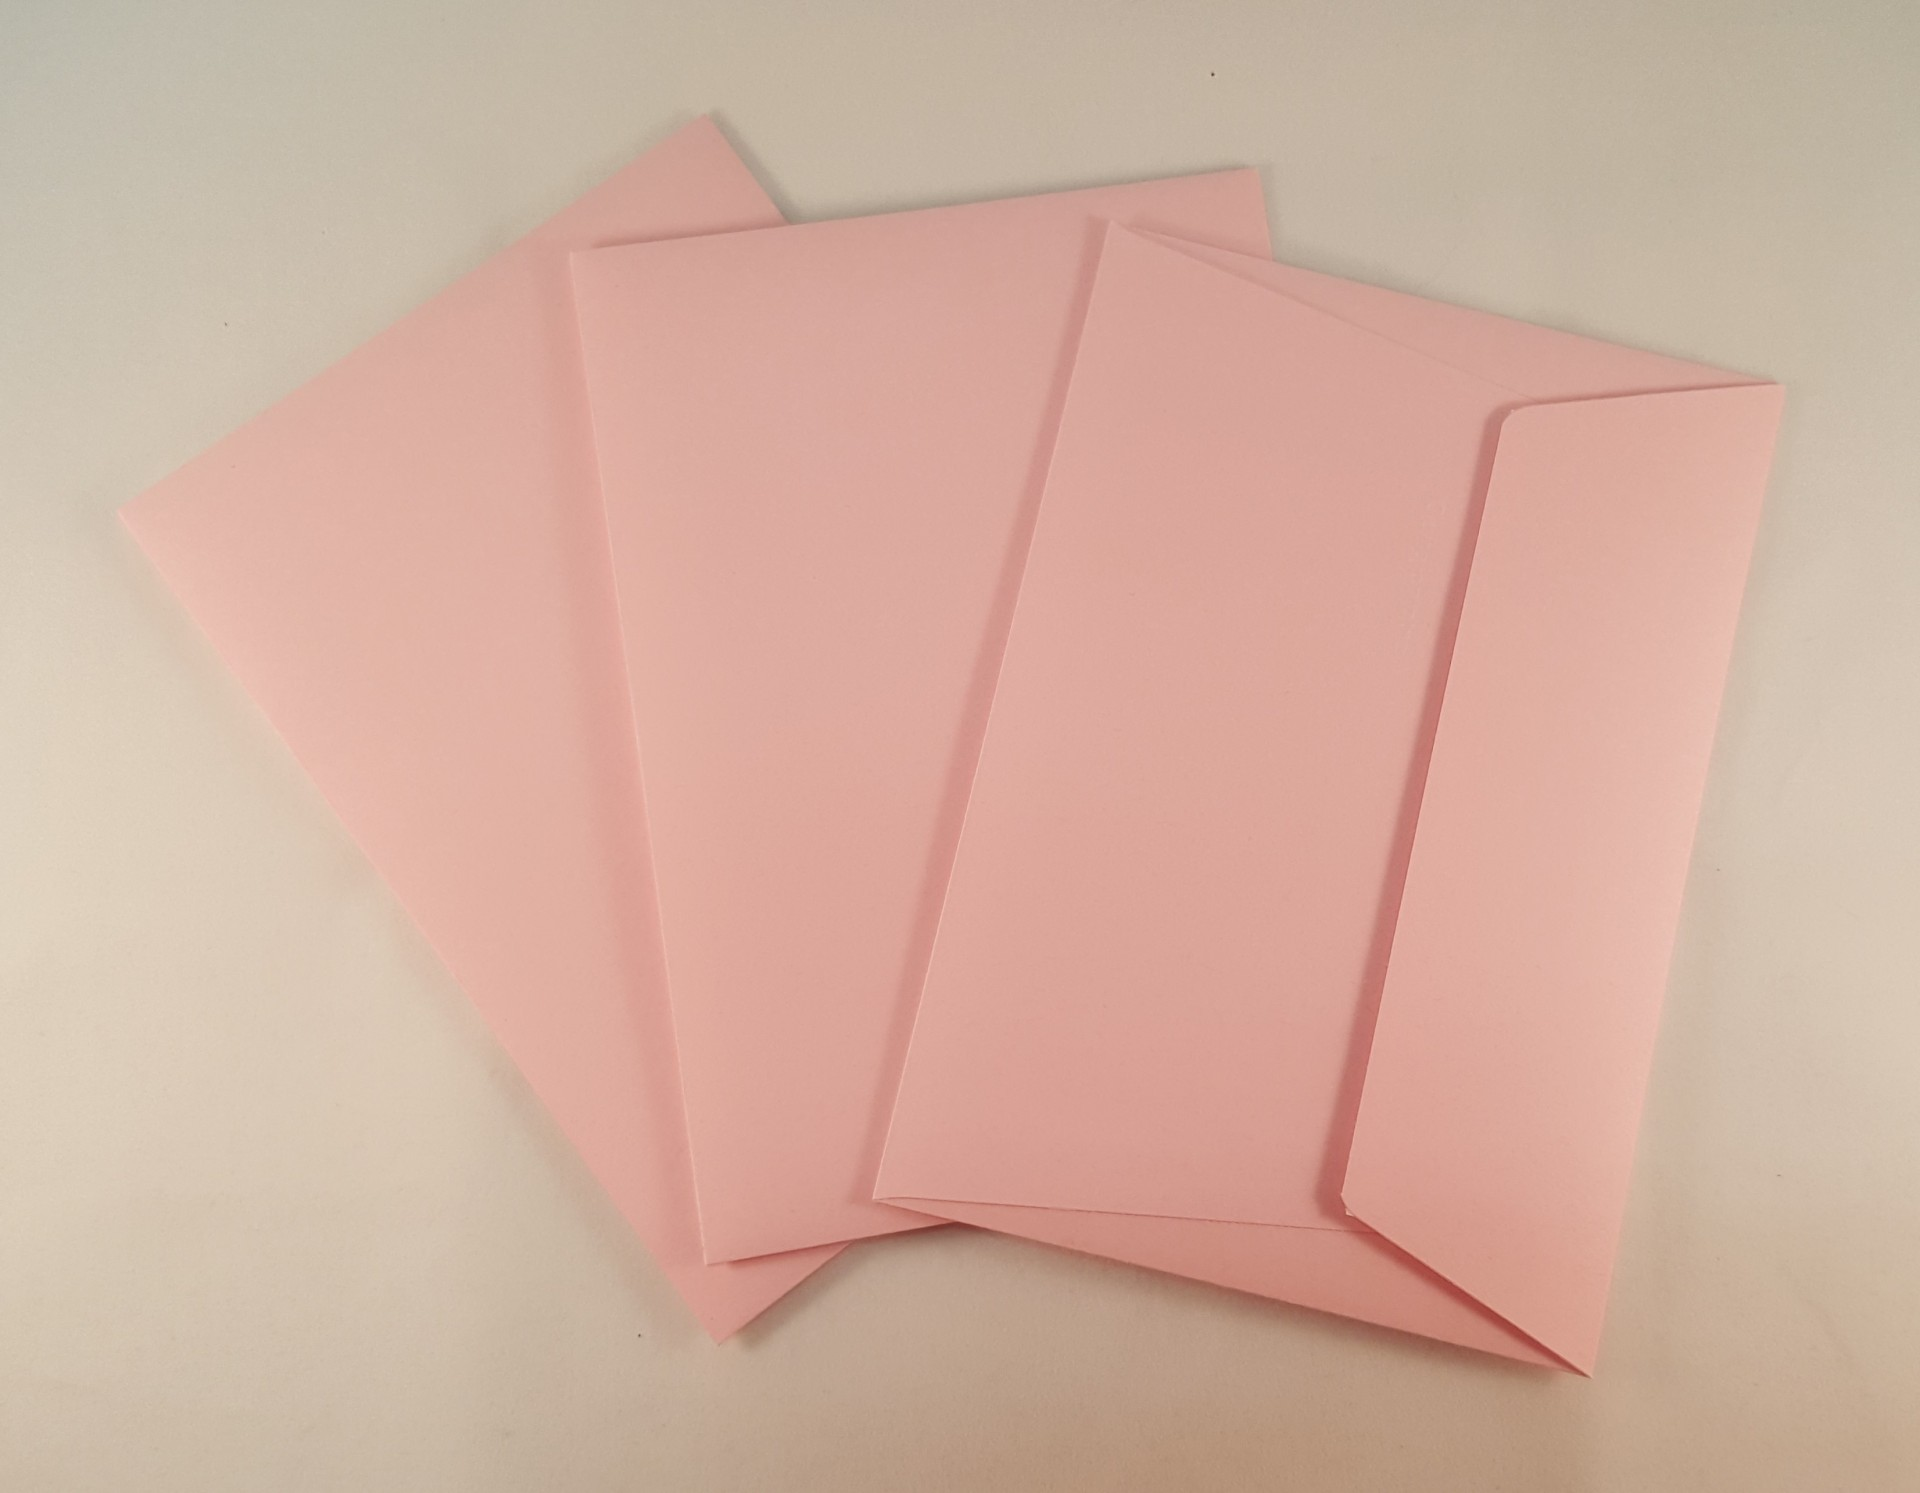 Envelopes C6 coloridos cor rosa claro